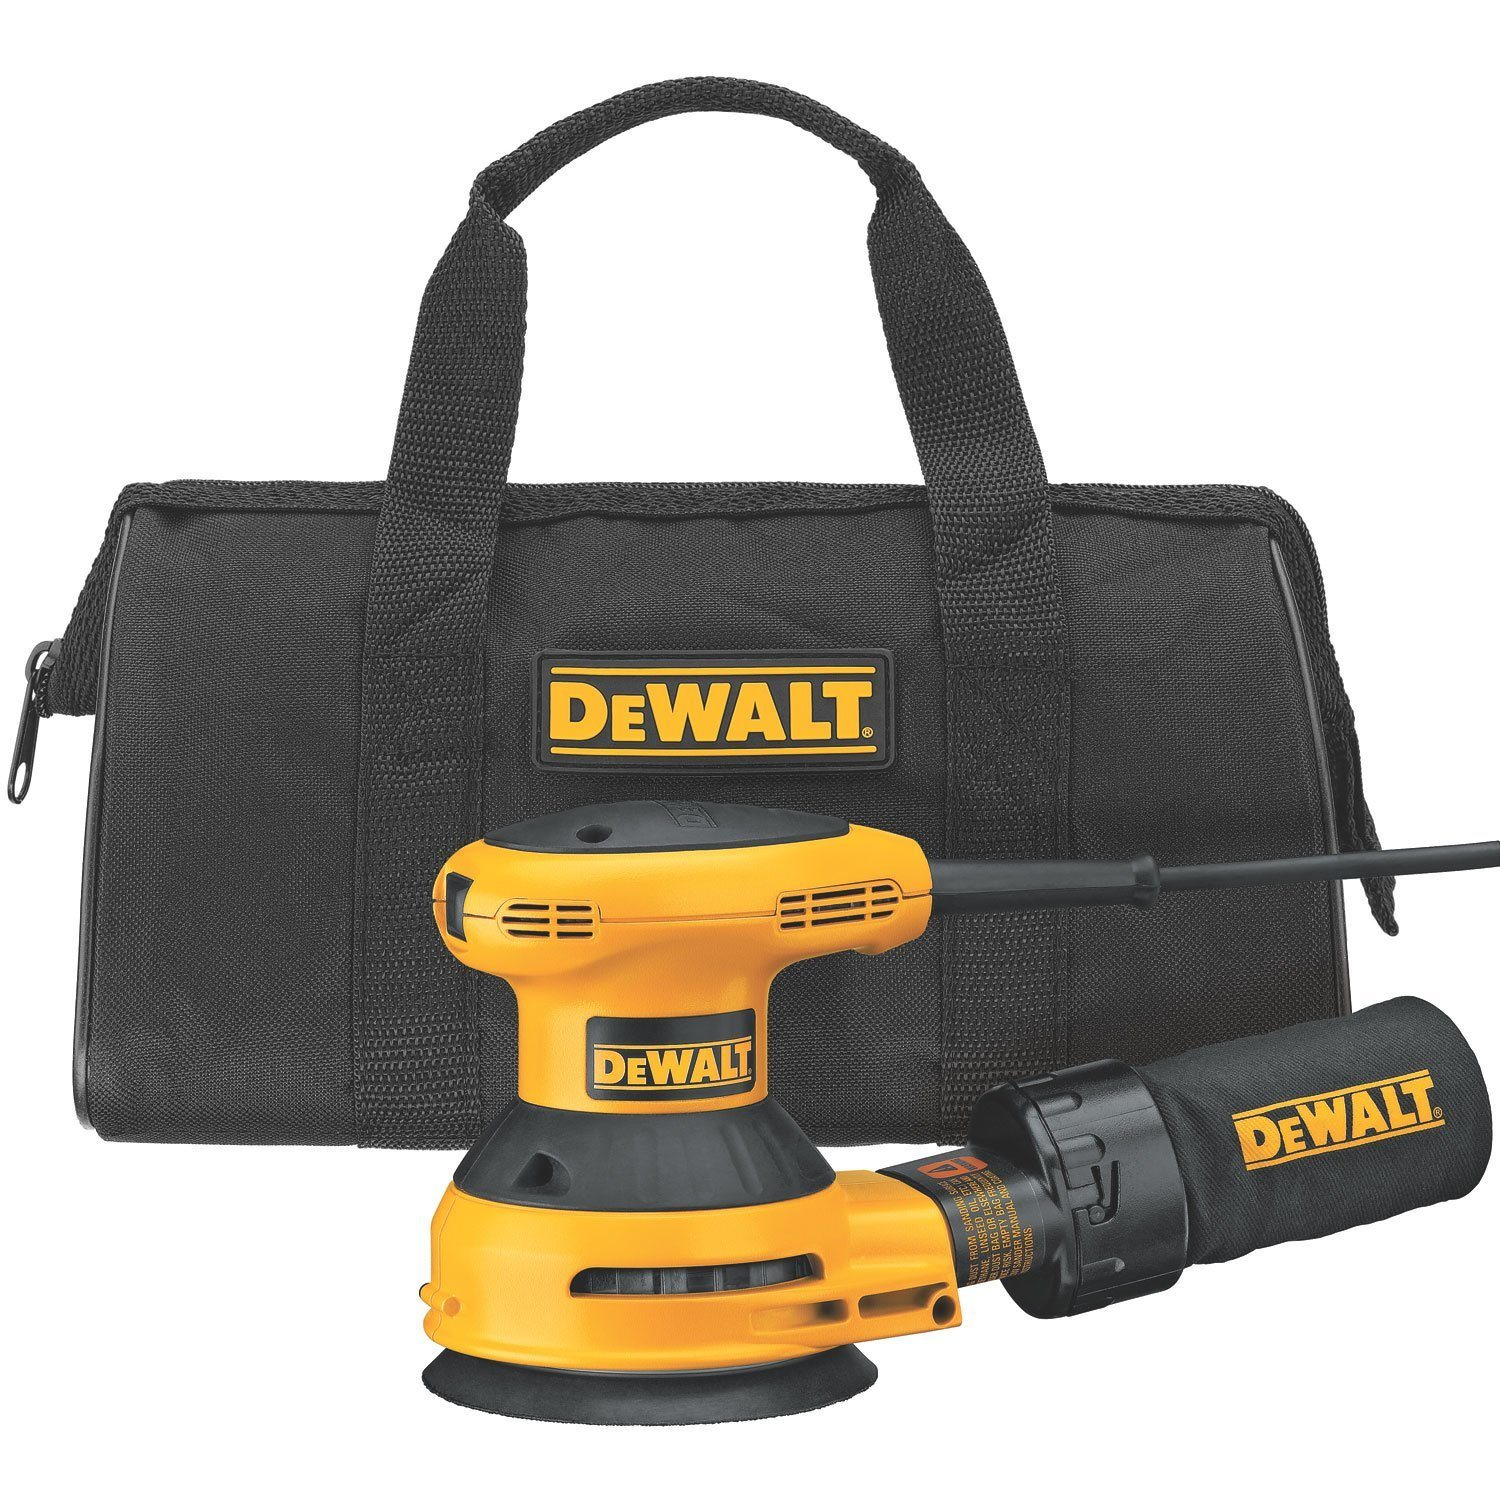 dewalt-d26451k-corded-3-amp-5-inch-random-sander-sander-with-cloth-dust-bag